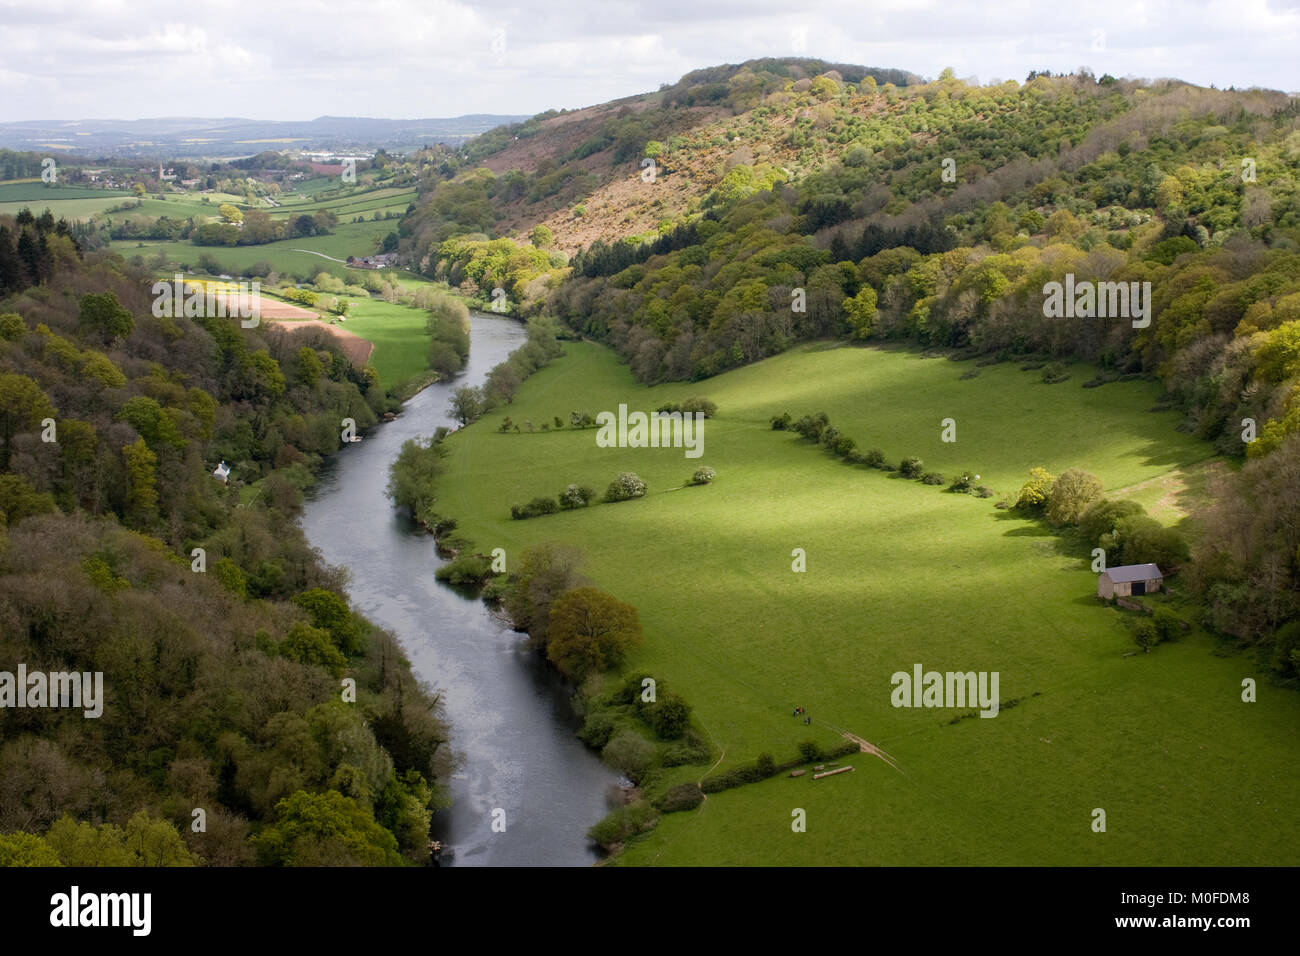 Vista of River Wye from Symond's Yat Rock, Forest of Dean, England - Stock Image